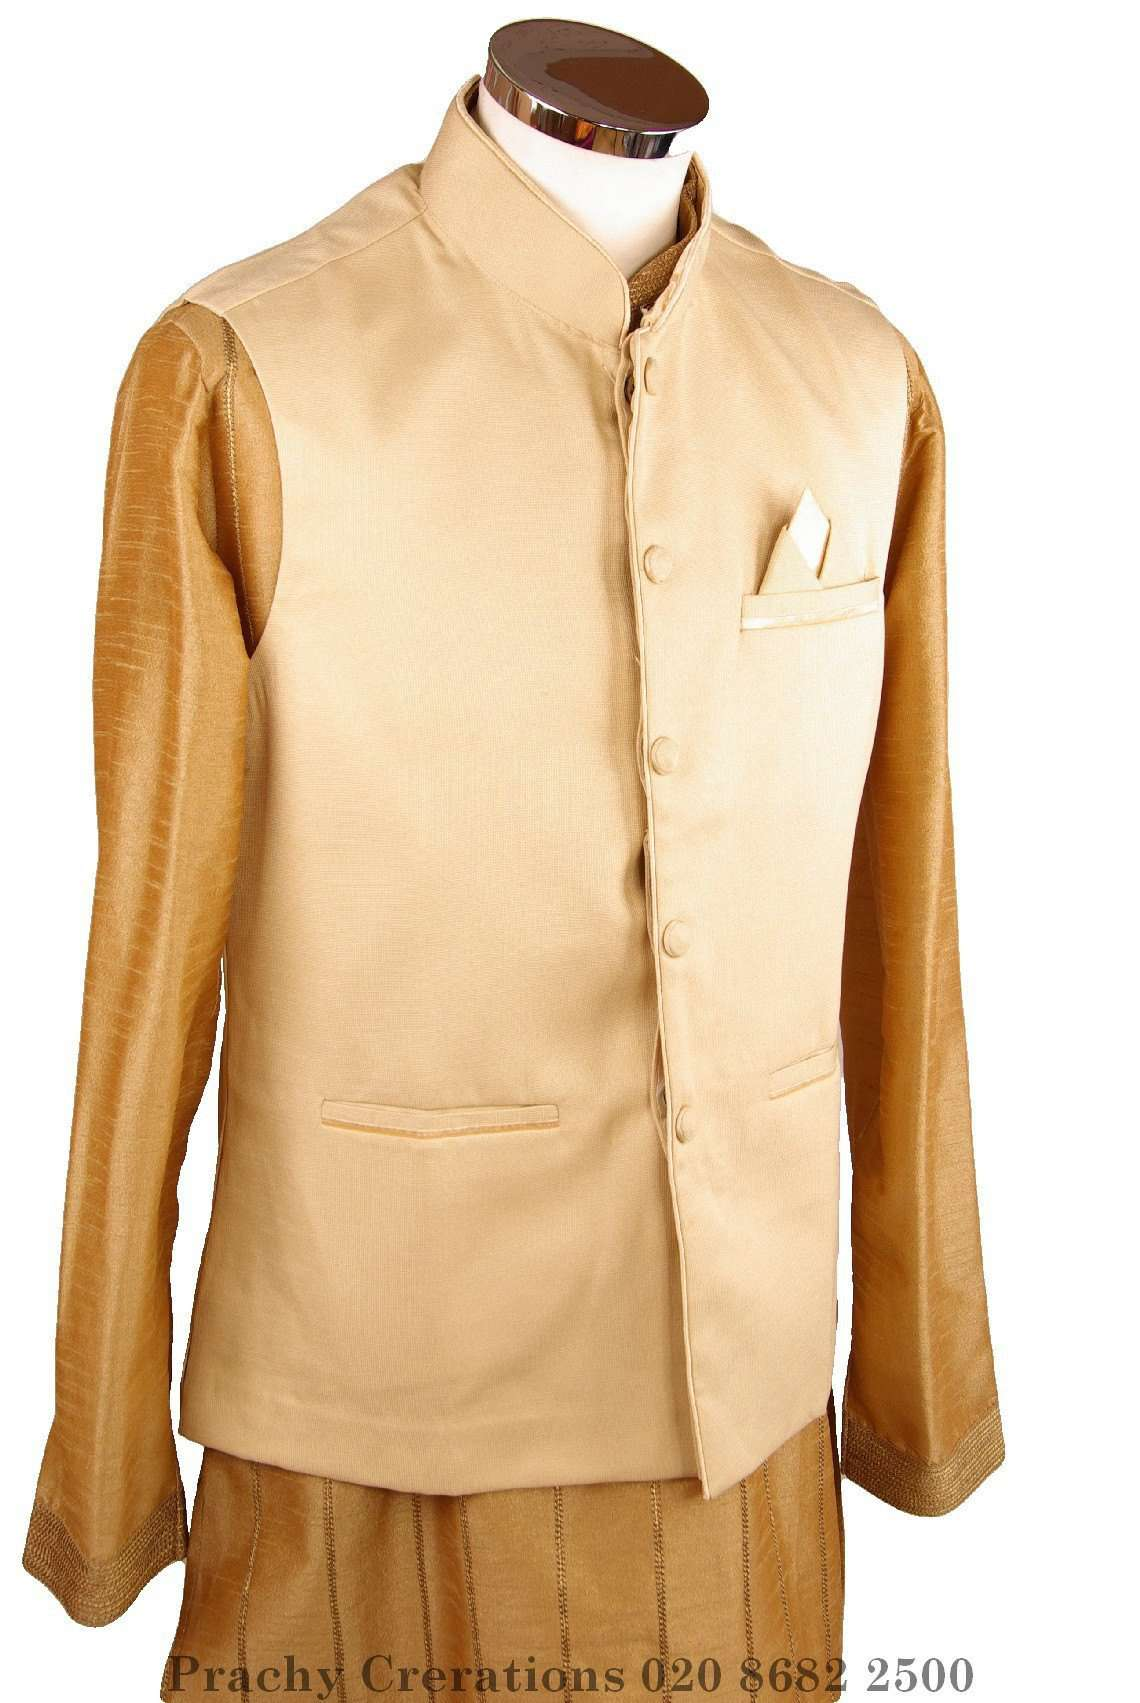 Mens Bollywood party style waistcoat - Cream - Cello H 0316 - Prachy Creations